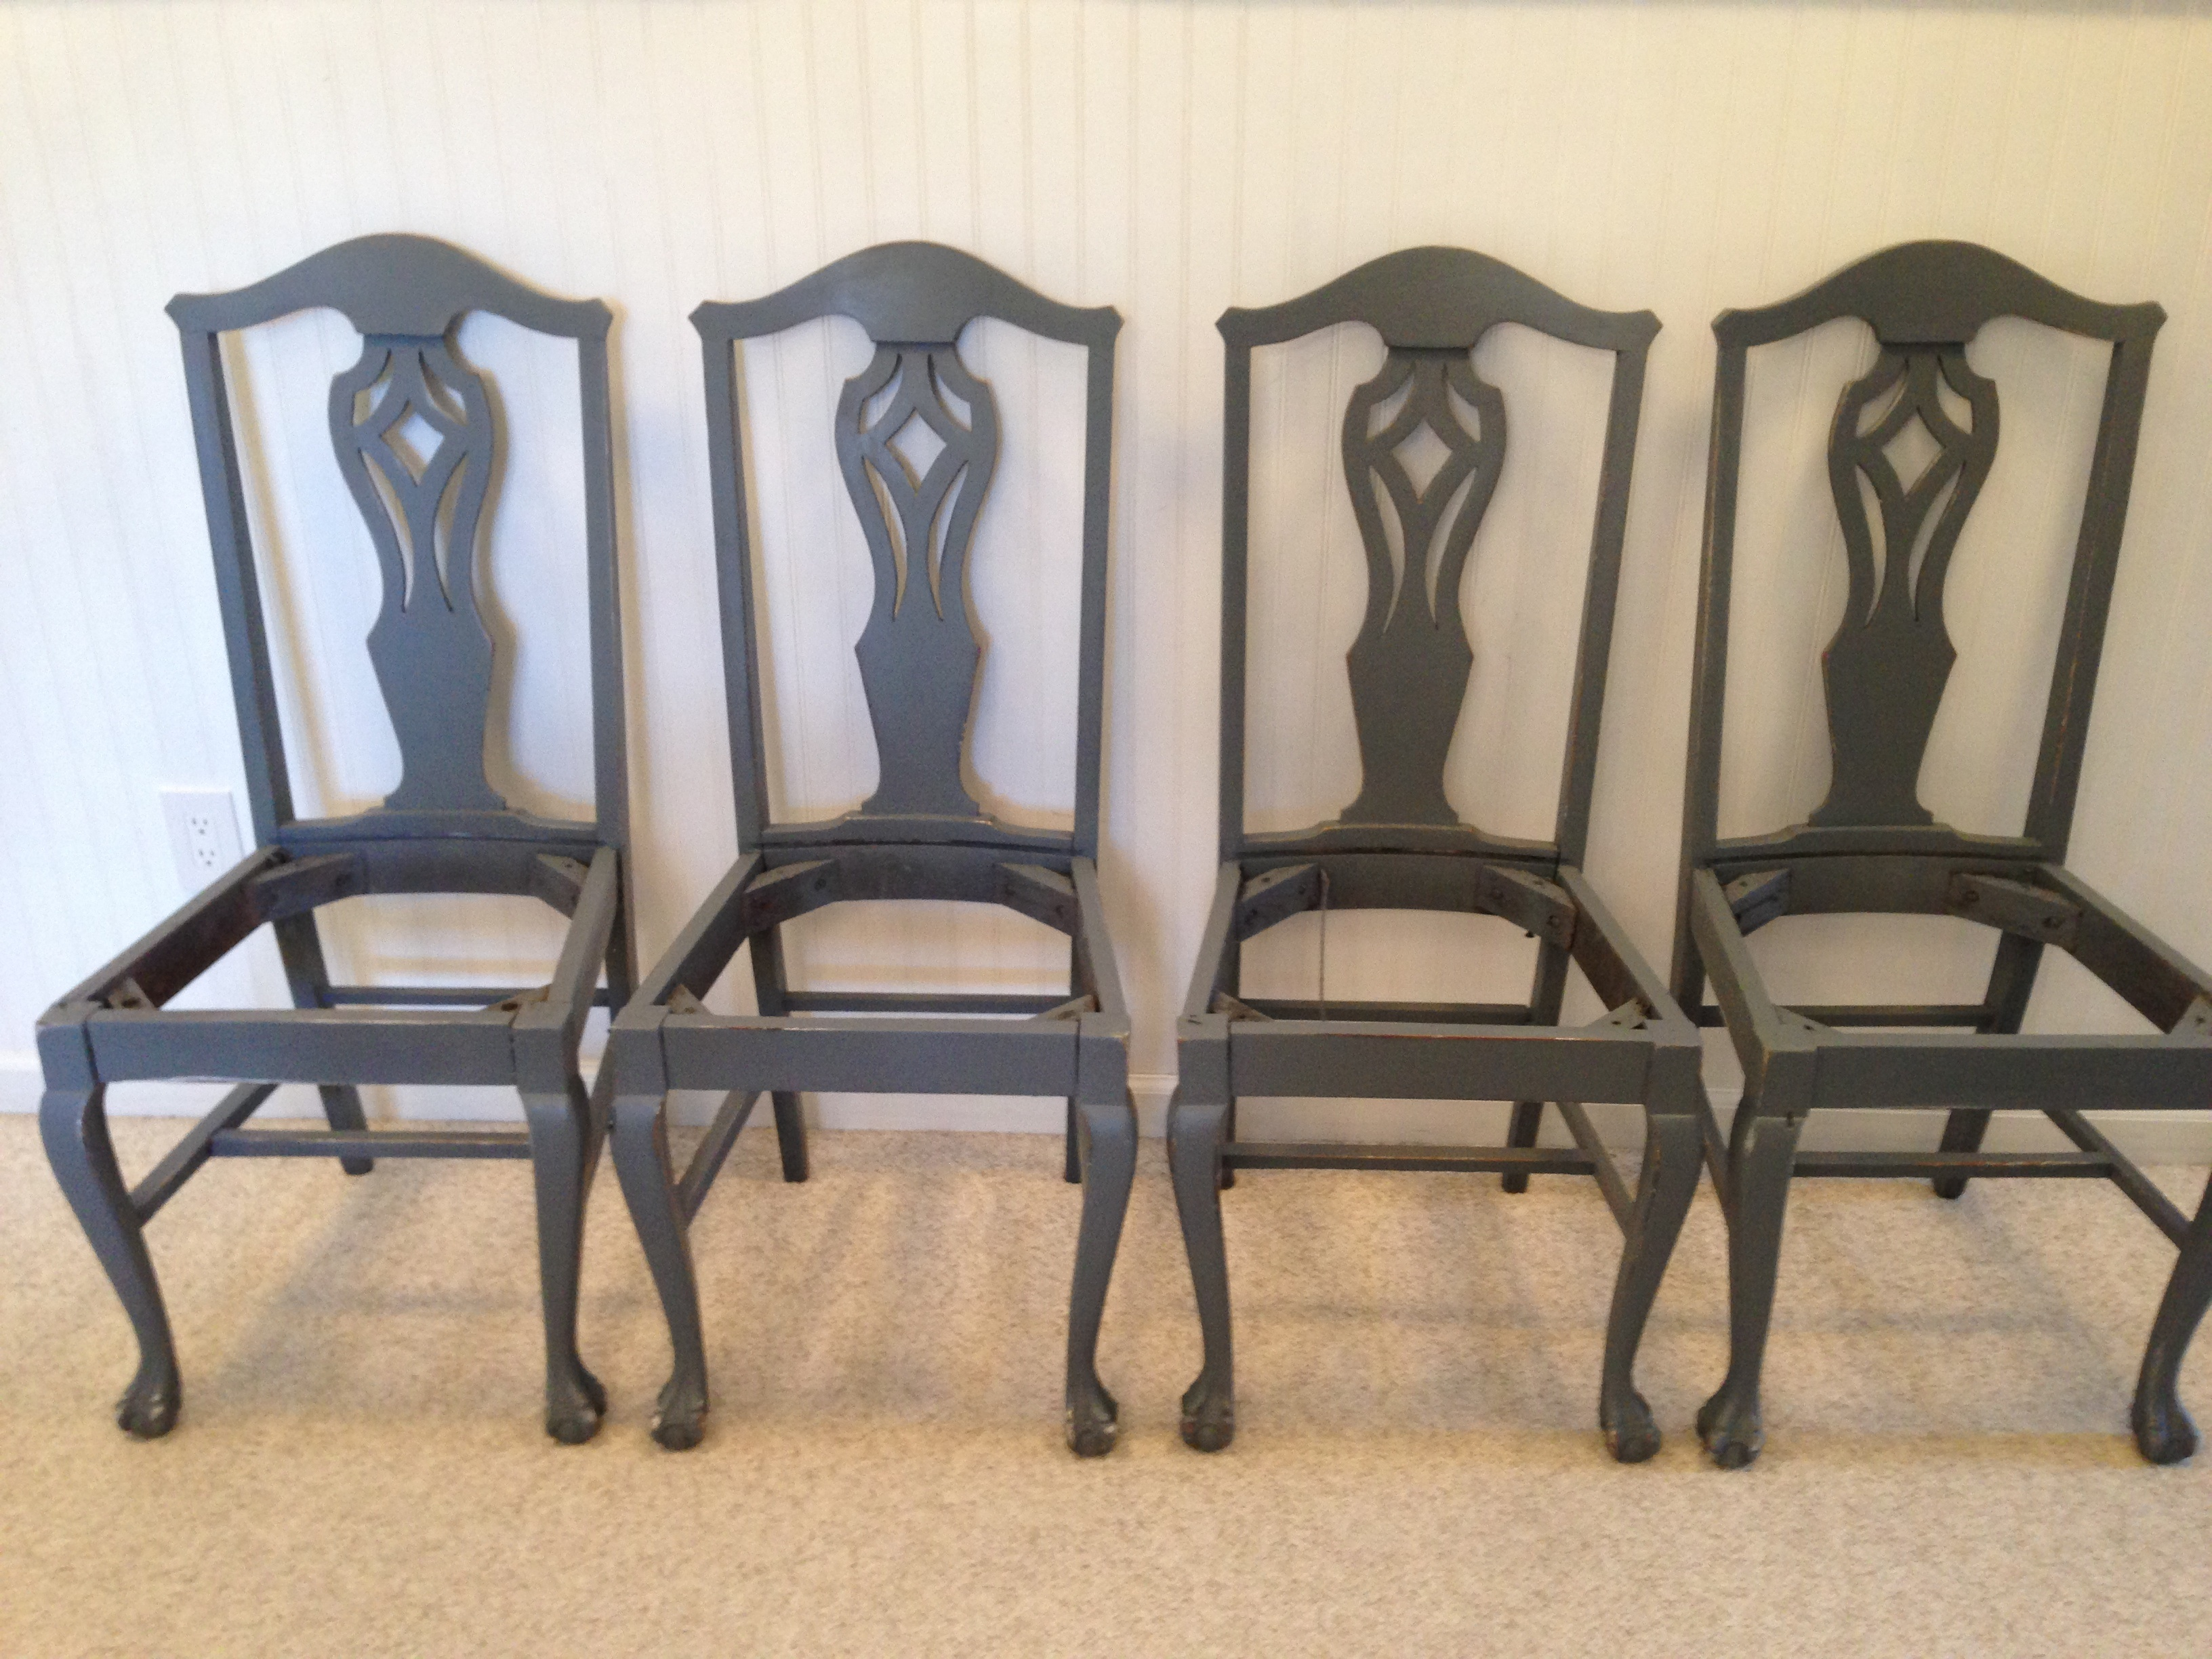 Chippendale ish chairs circa 1919 Fresh Vintage NC